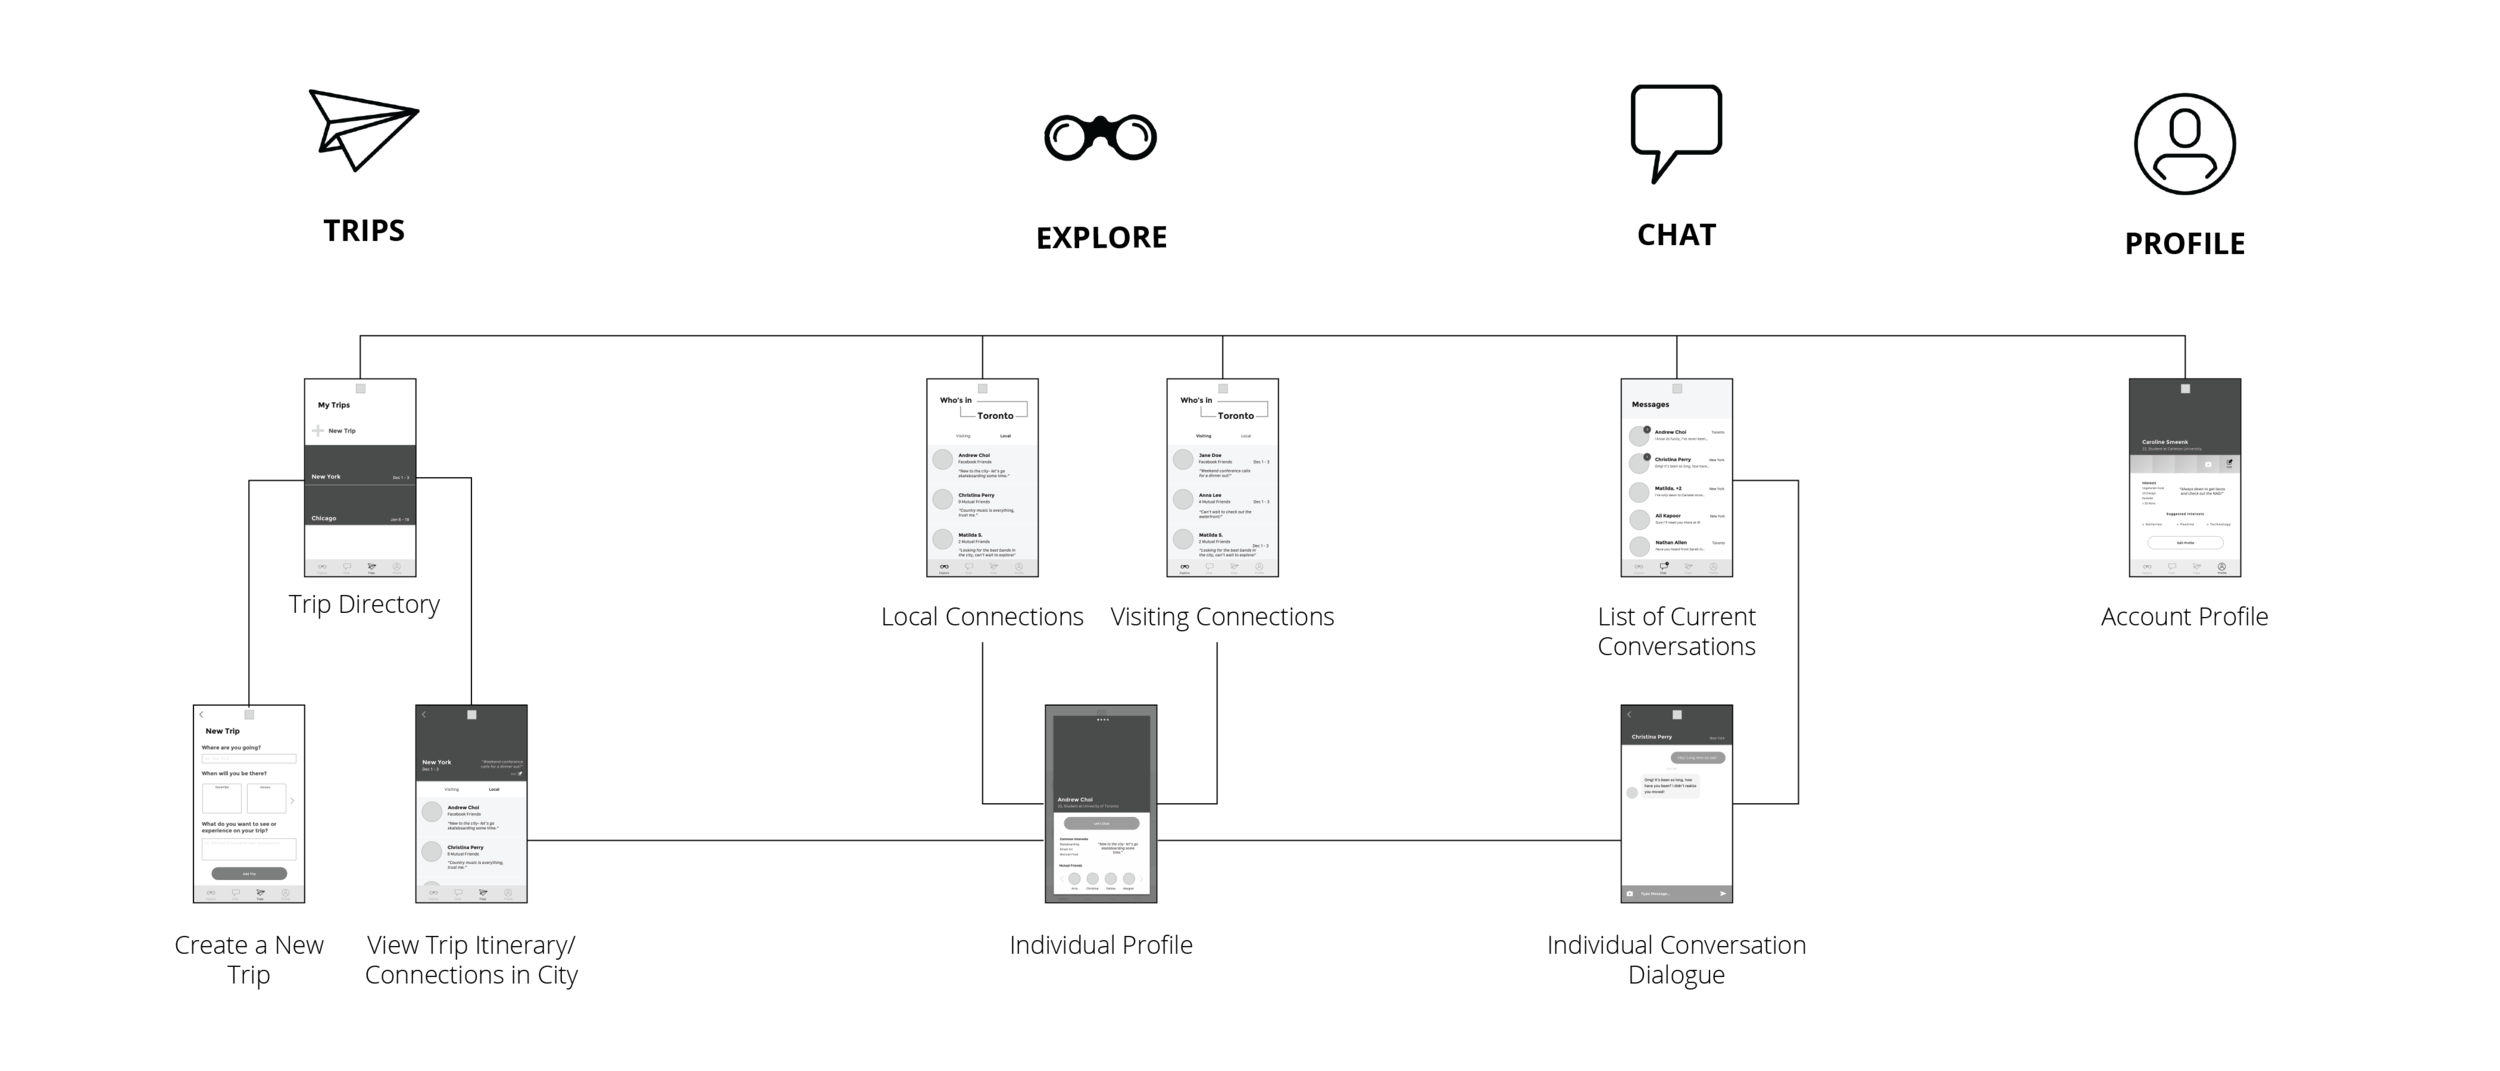 Streamlined app architecture to simplify actions and navigation.